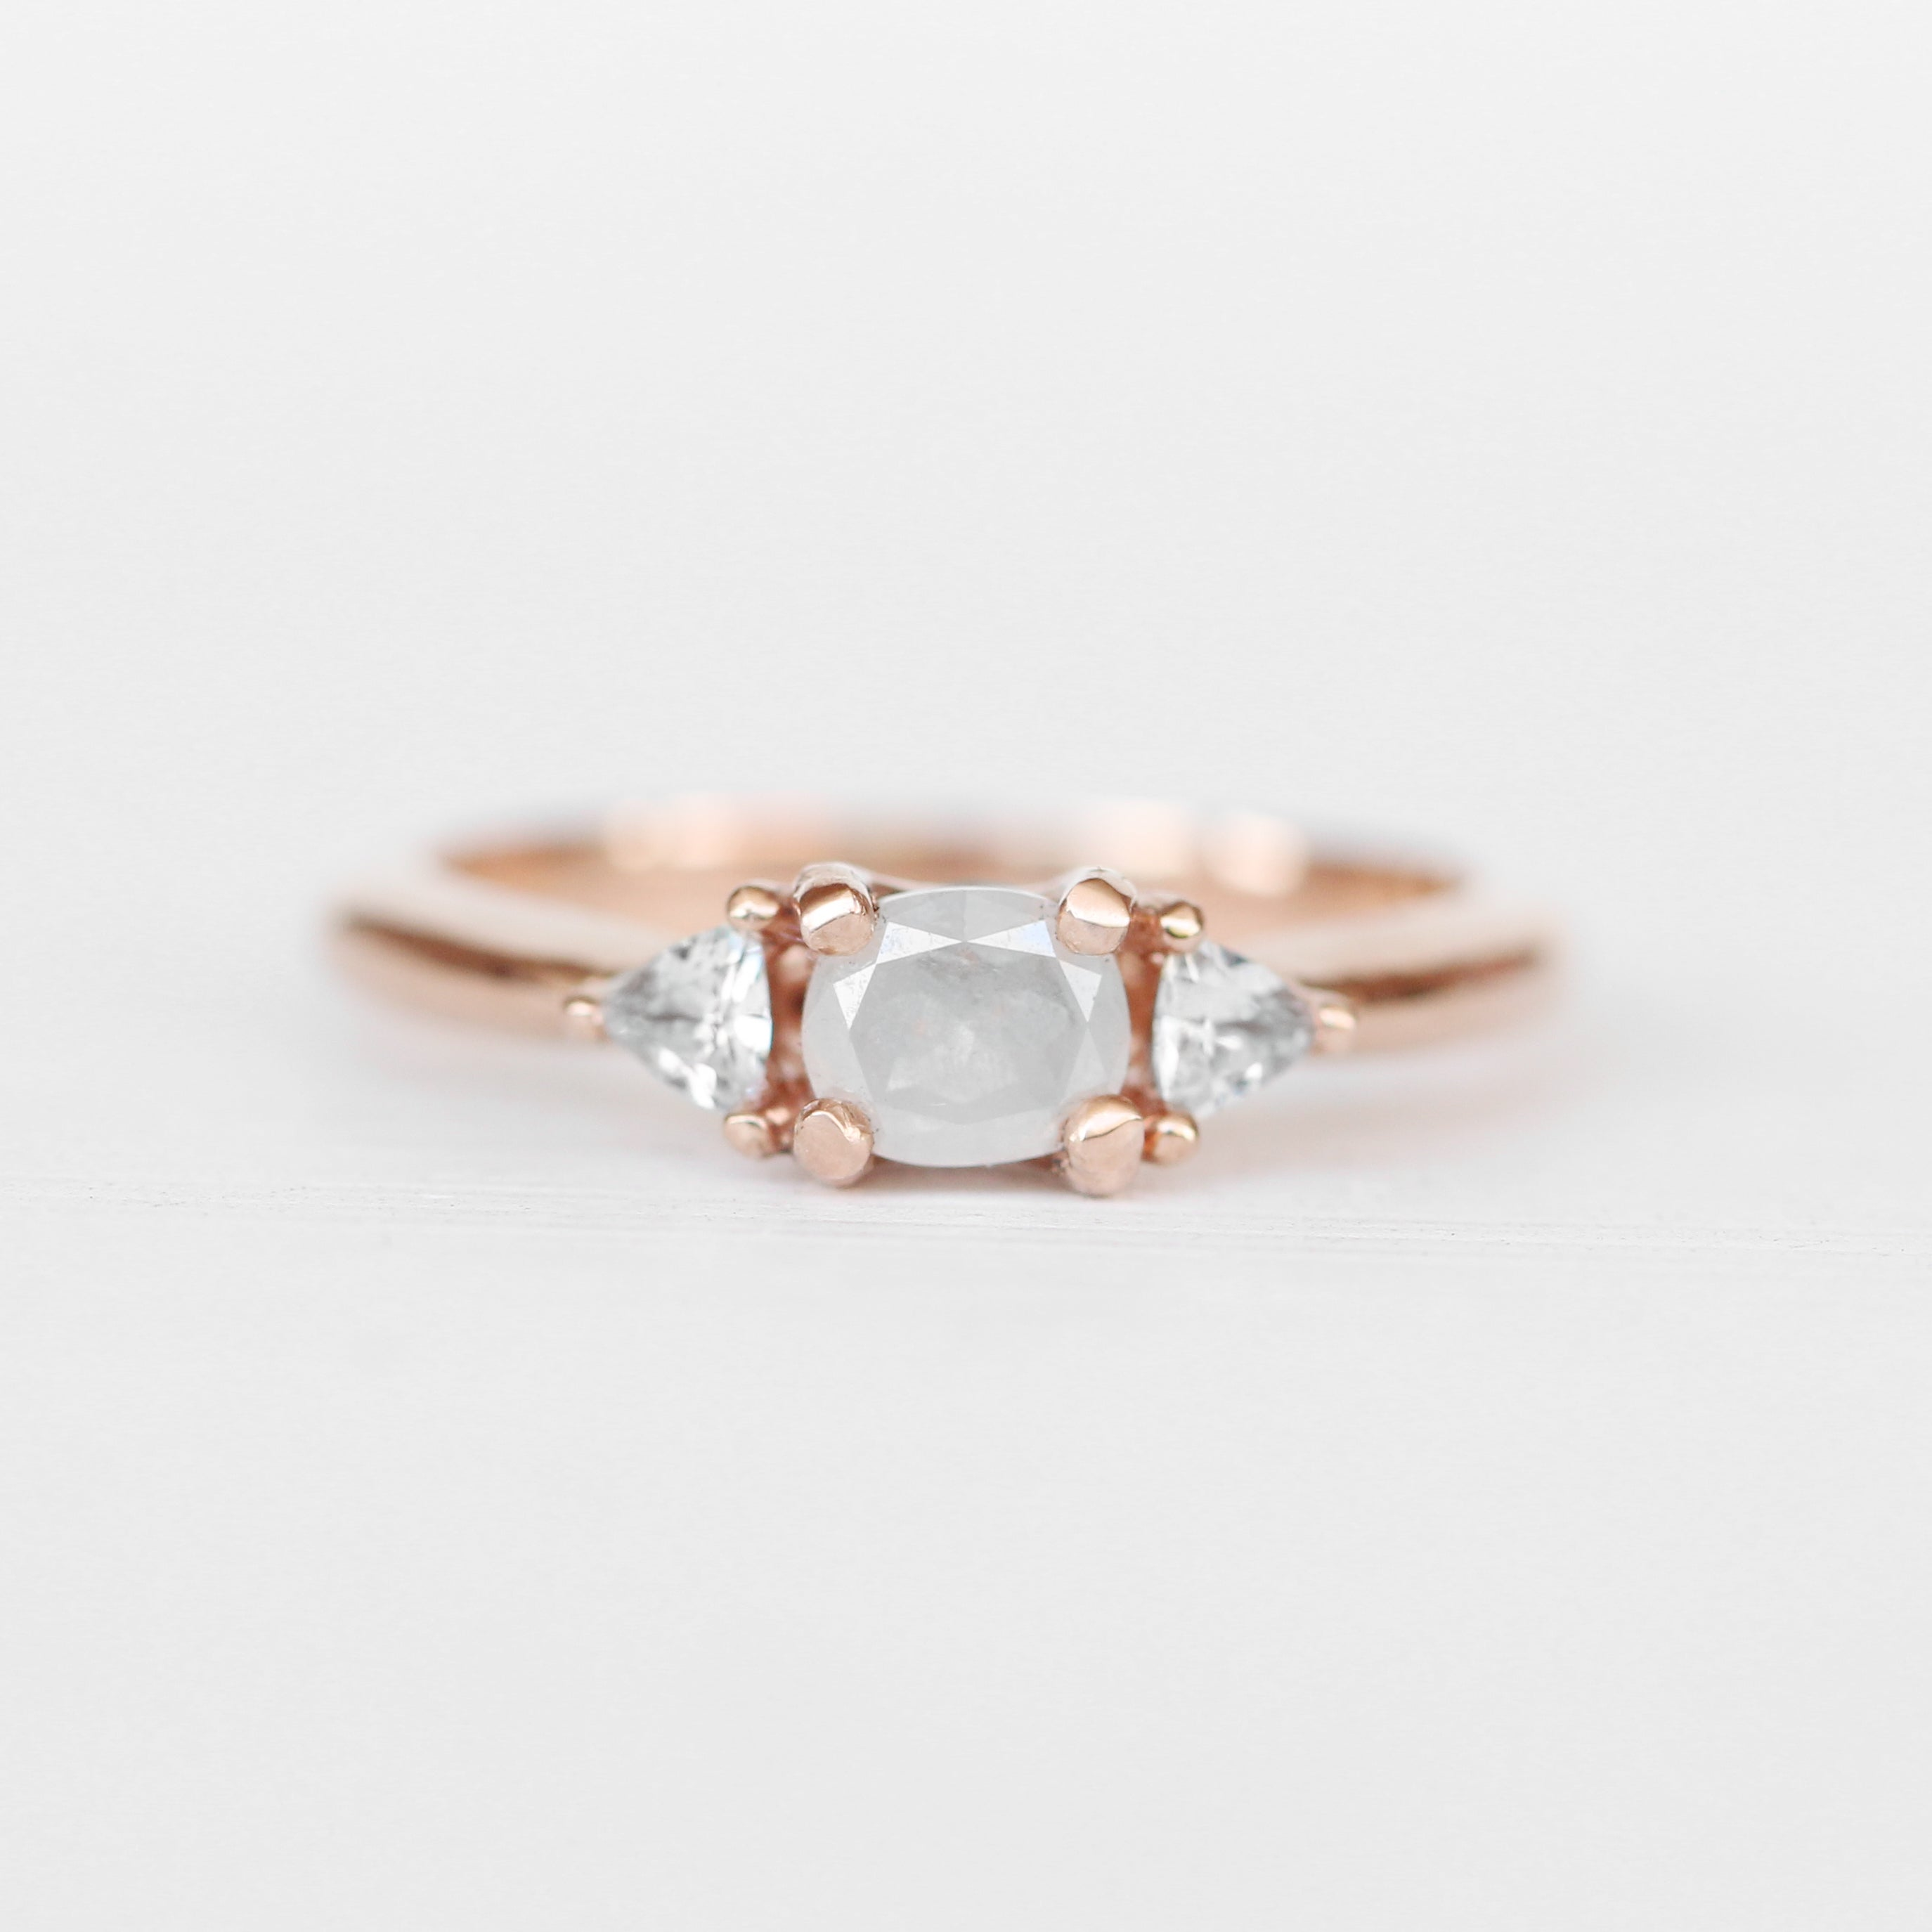 Nolen Ring with a White Misty Diamond and White Sapphires in 14k Rose Gold - Ready to Size and Ship - Celestial Diamonds ® by Midwinter Co.